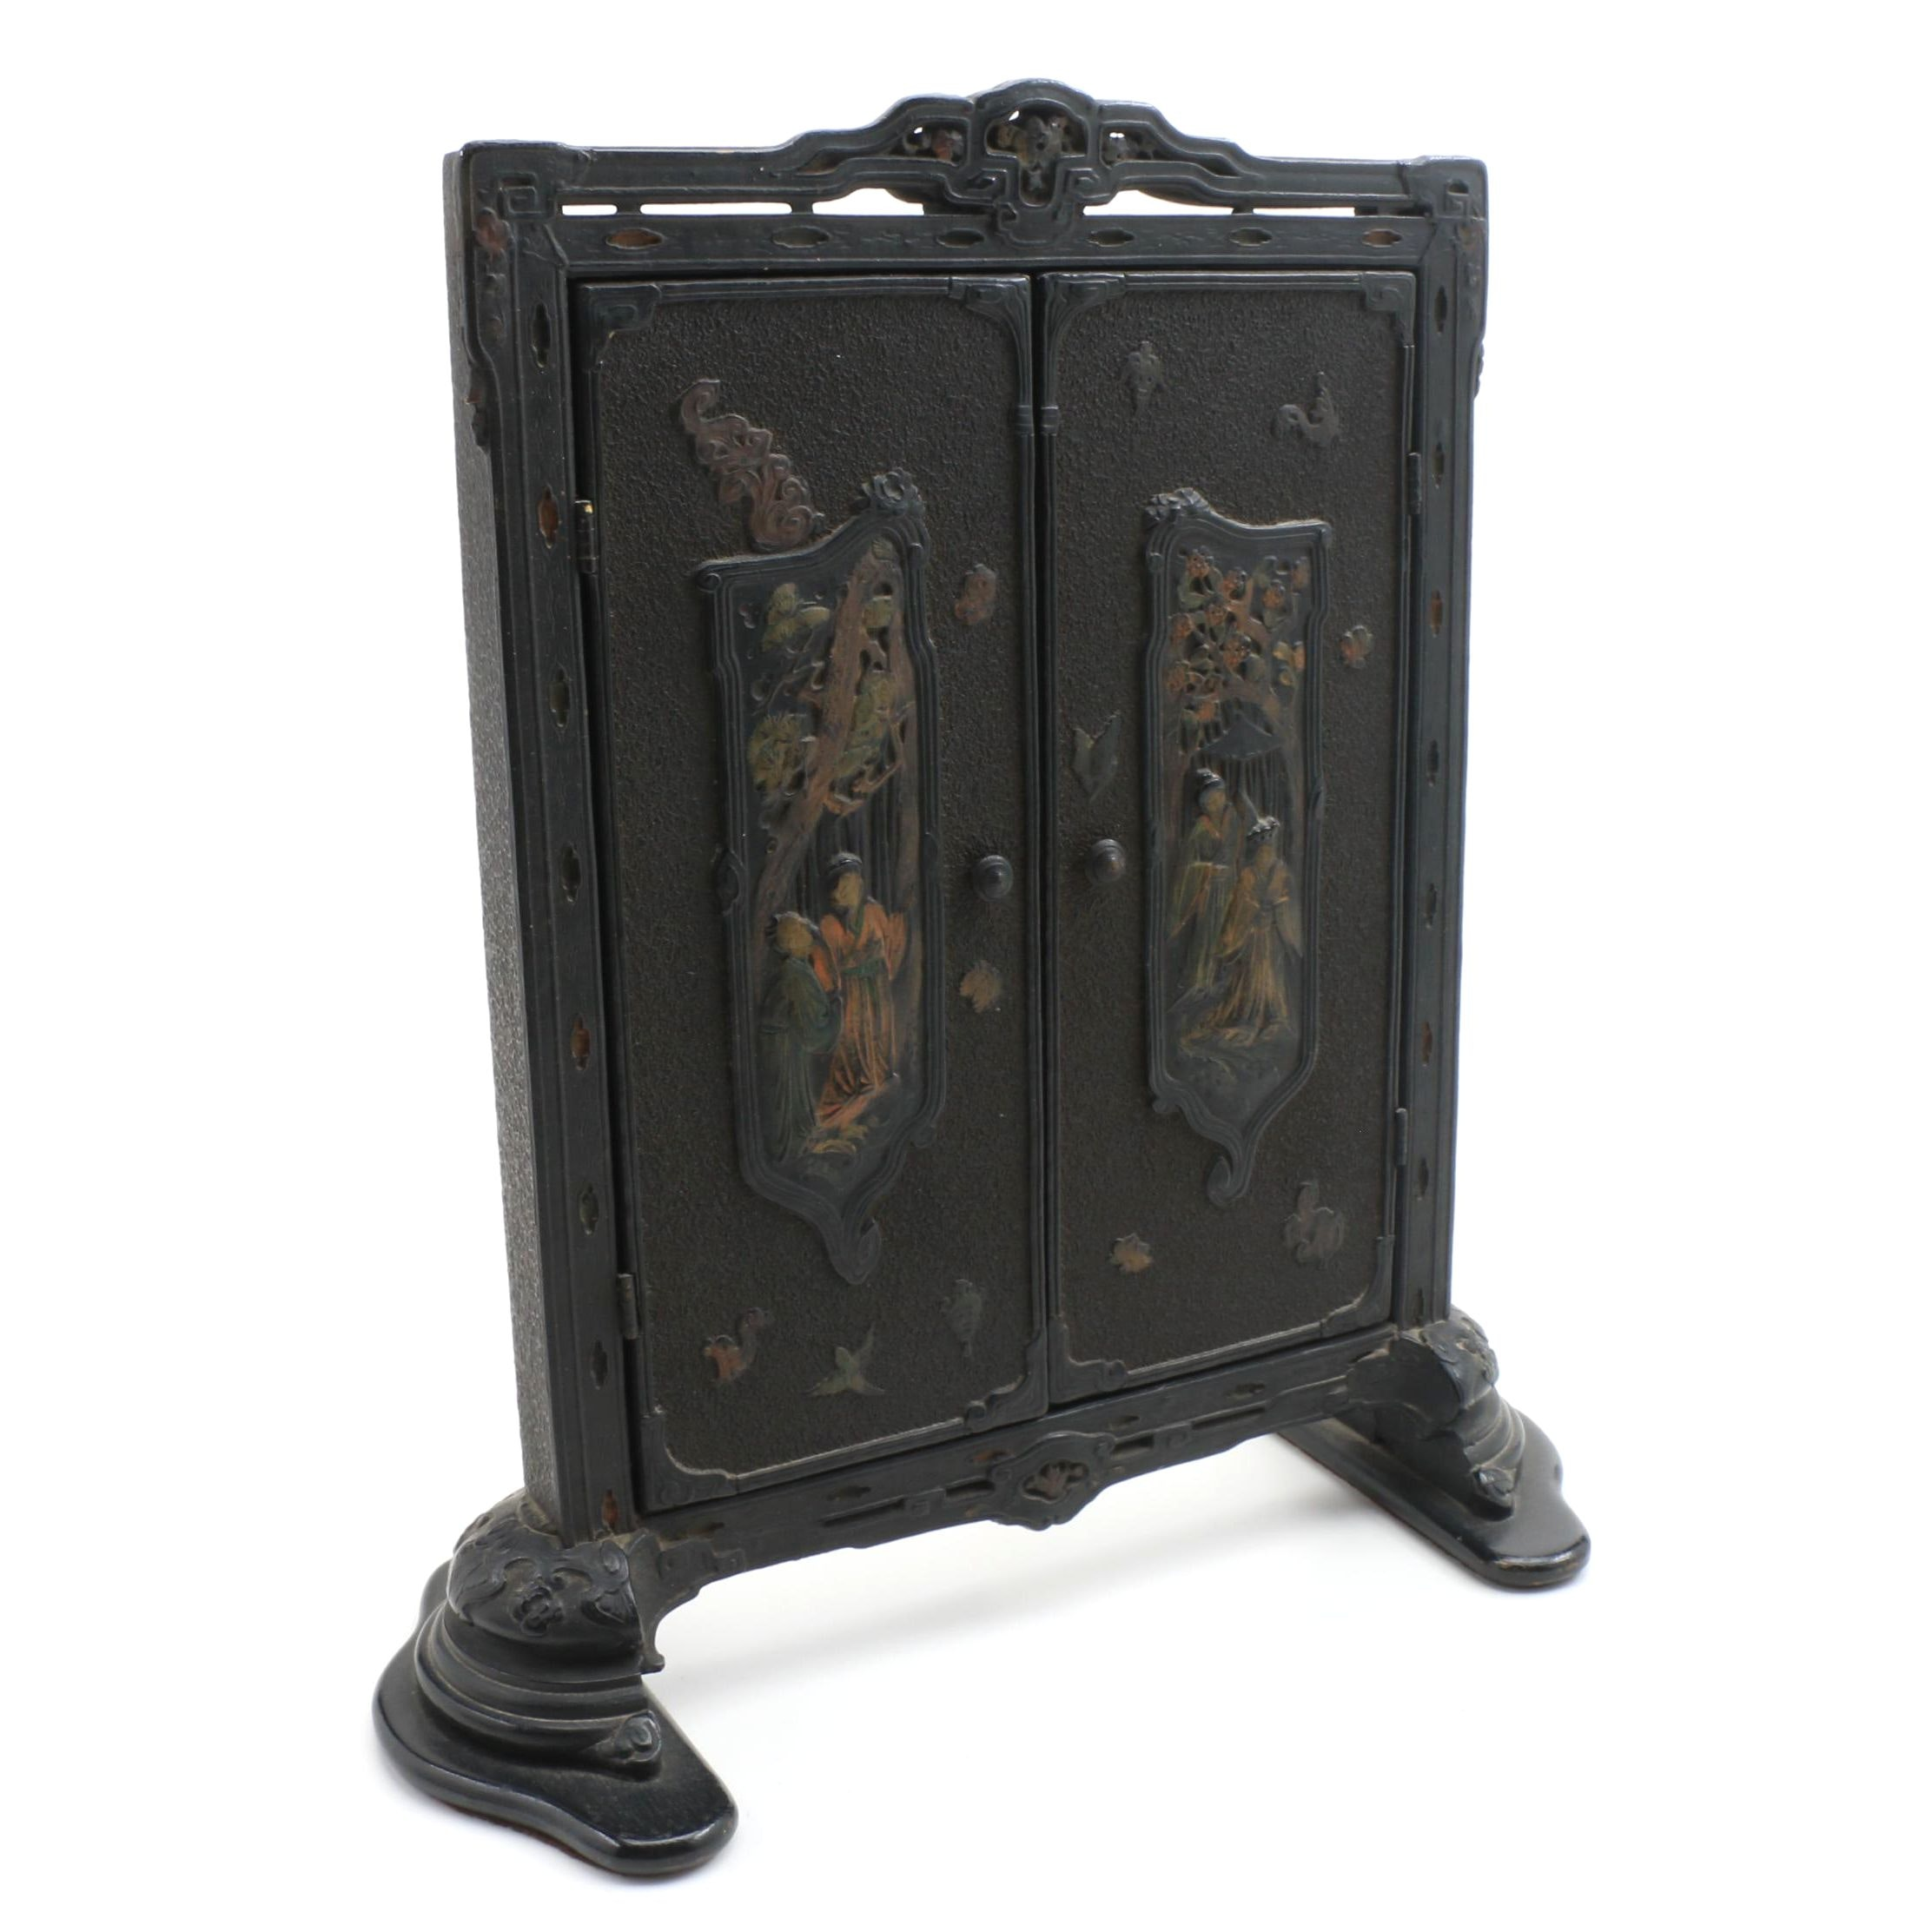 Chinese Lacquered Picture Frame with Two Hinged Doors